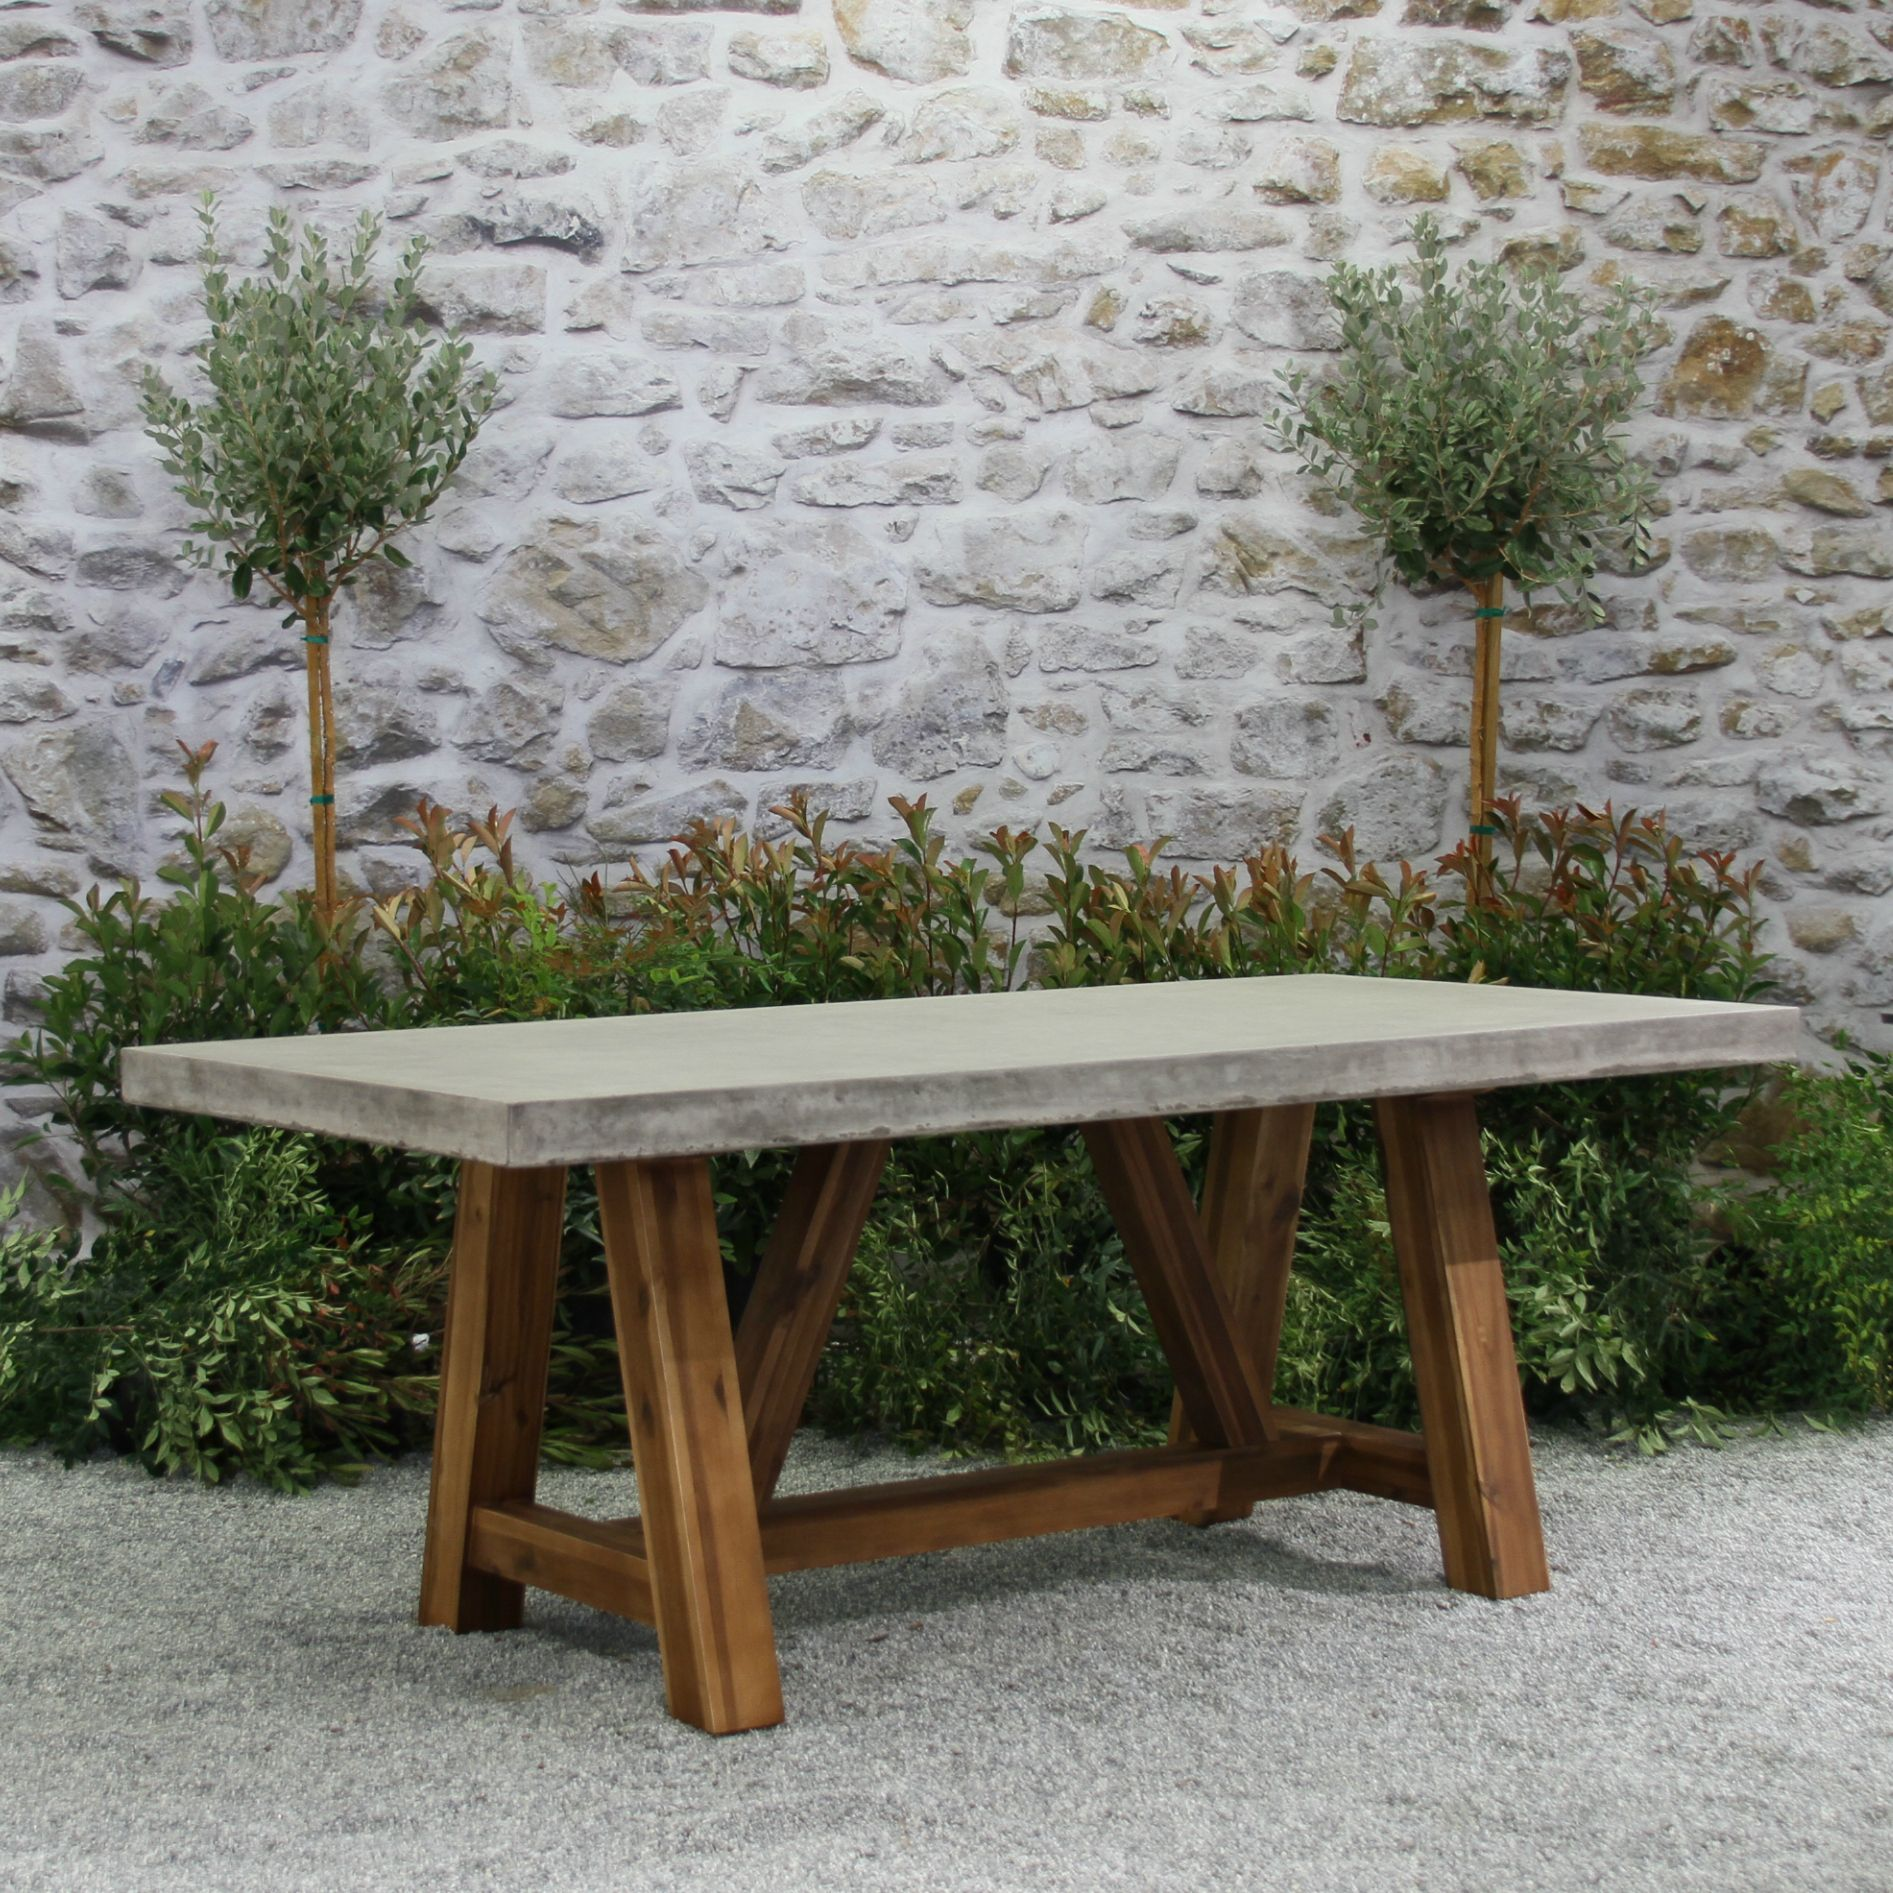 Superb Outdoor Tables On Sale Now. An Outdoor Table From Our Teak Outdoor Furniture  Collection Makes It Easy To Entertain In Style. The Bordeaux Dining Table  Is ...